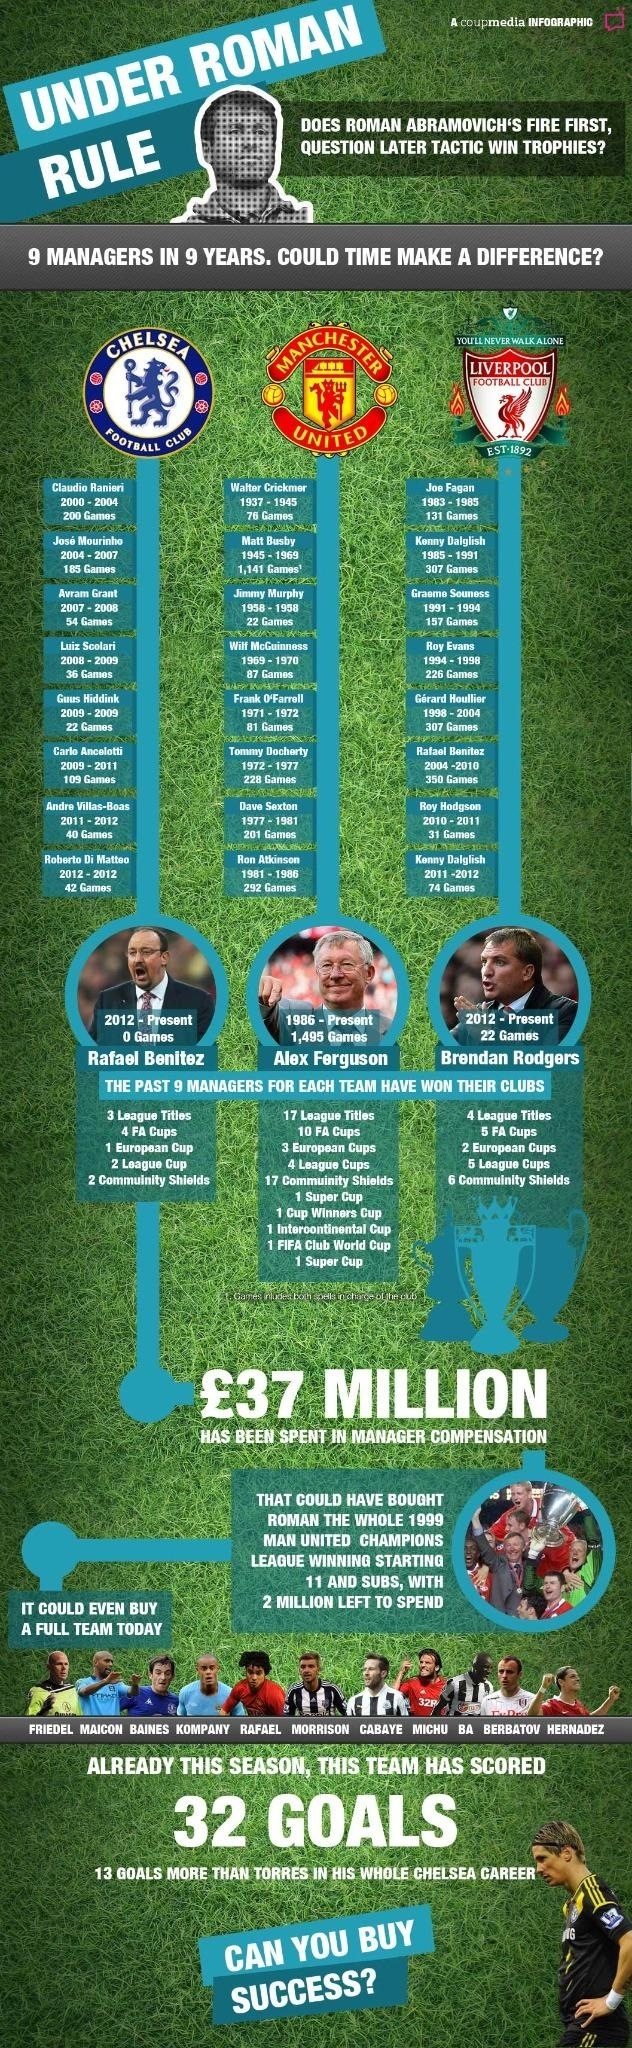 under-roman-rule--is-it-time-for-chelsea-to-trust-their-manager_50ae773d372e6